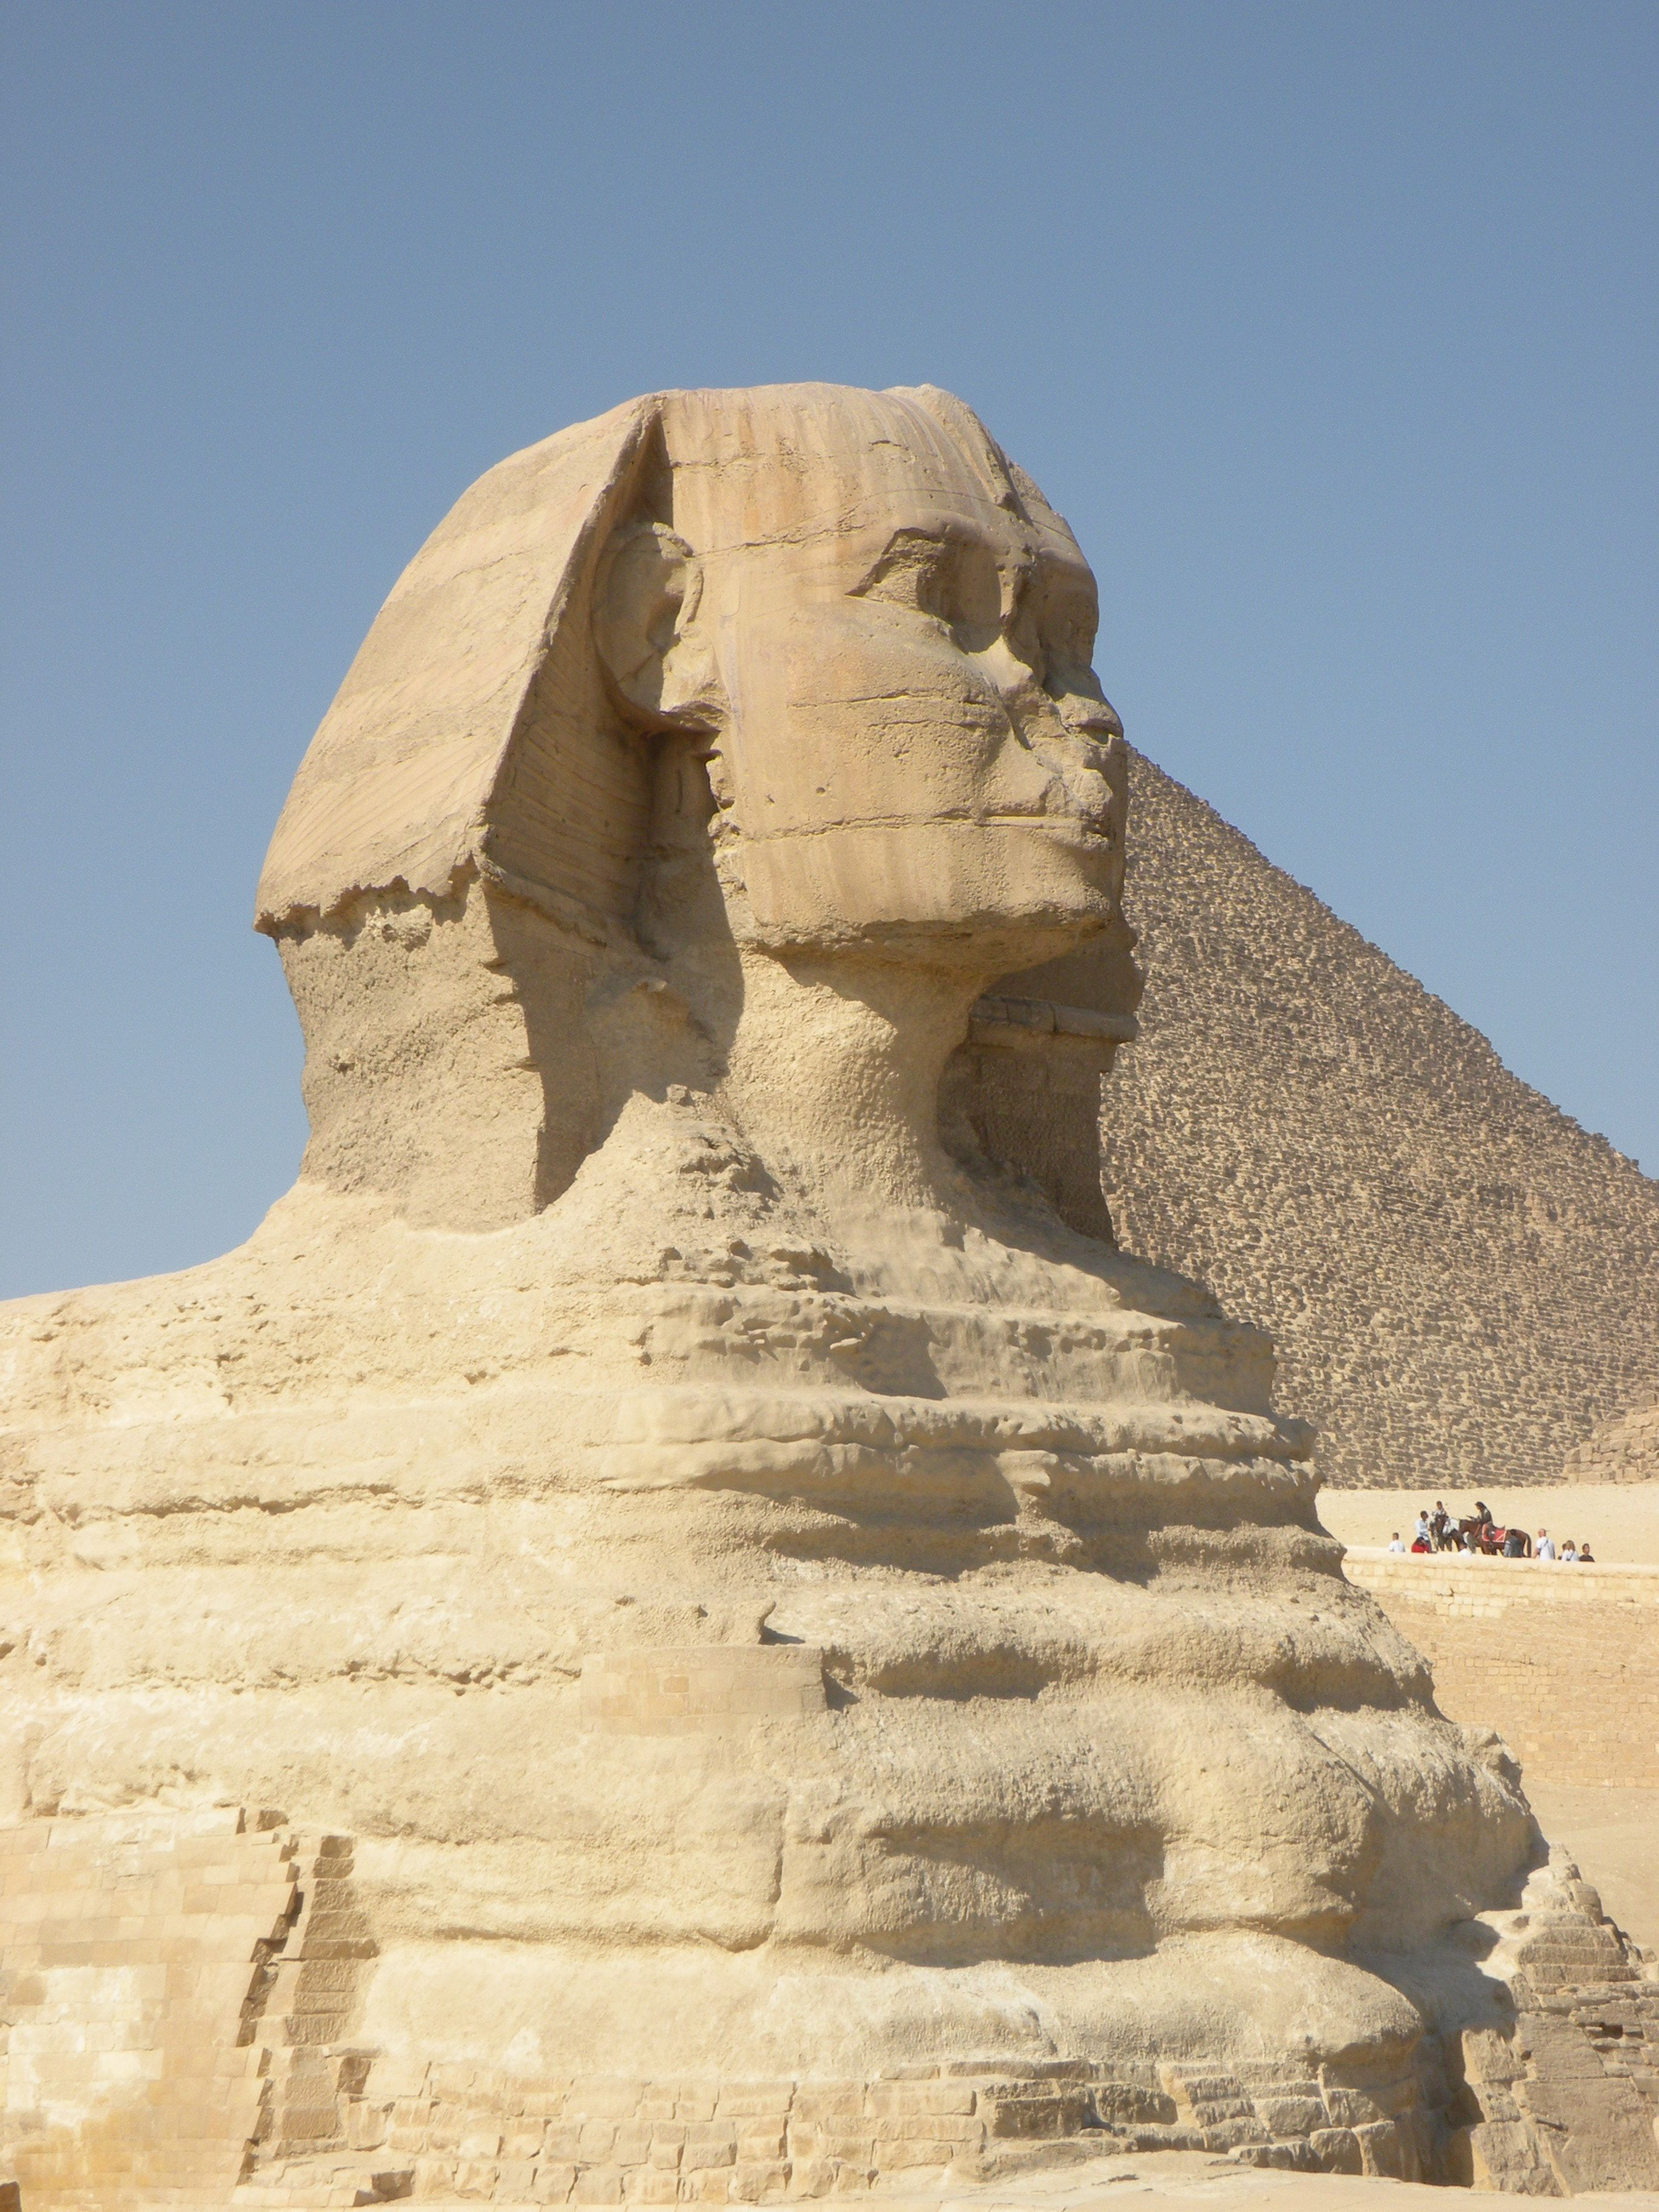 The Sphinx The Pyramids Of Giza Egypt Pyramids Of Giza Egypt Ancient Civilizations